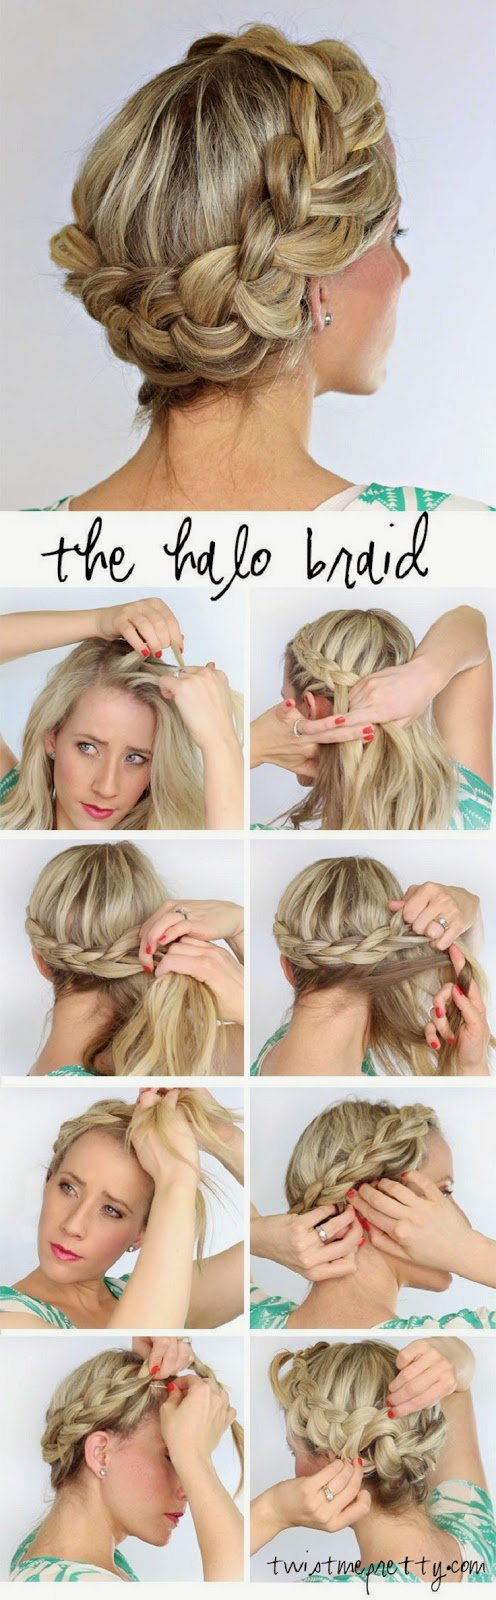 Top 5 Best Messy Braided Hairstyle Tutorial